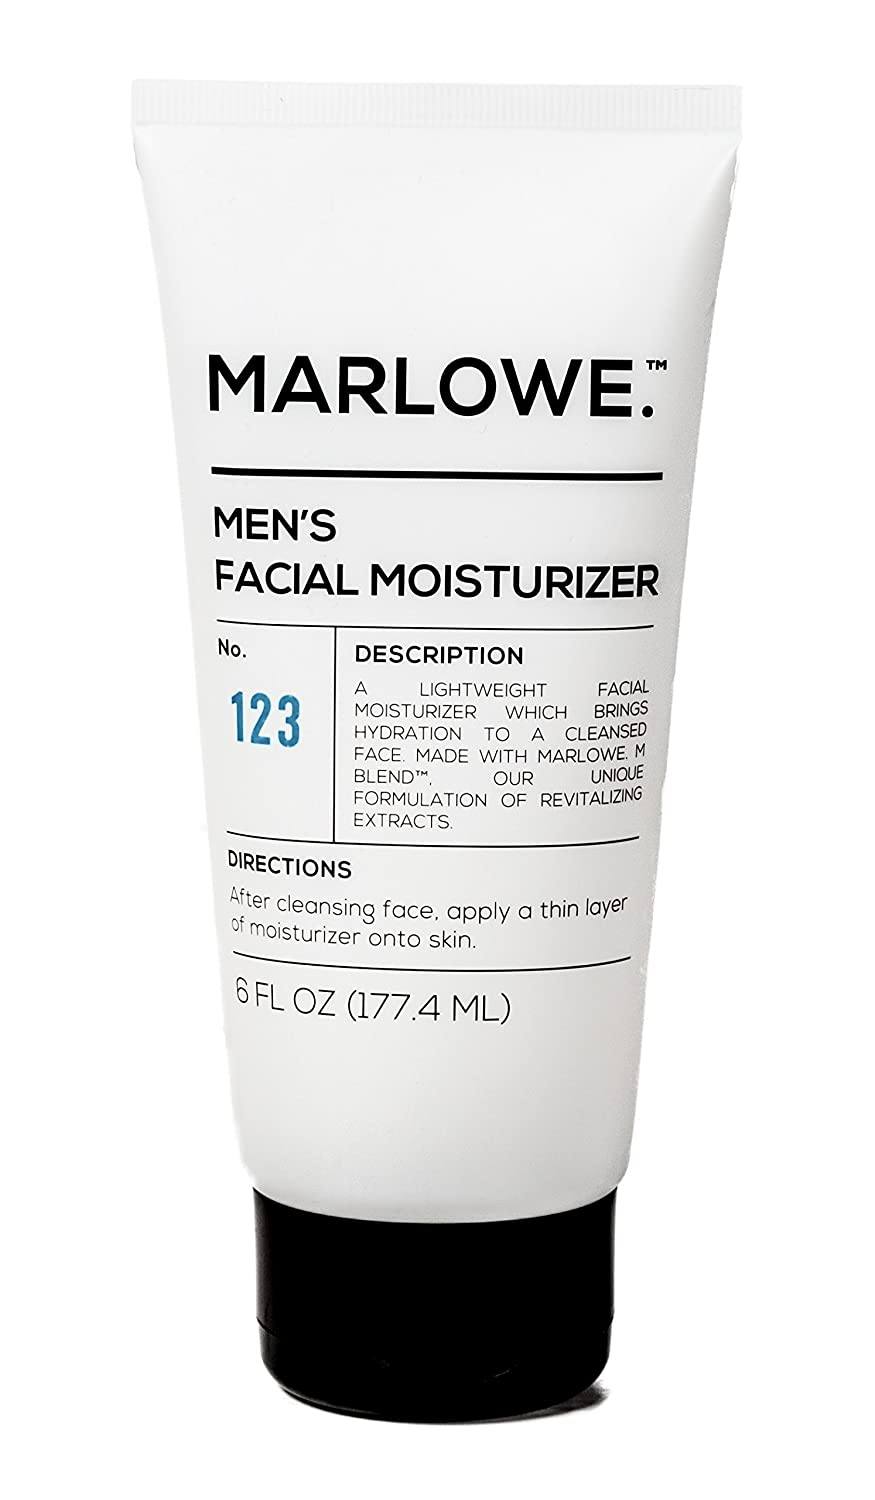 MARLOWE. No. 123 Men's Facial Moisturizer 6 oz | Lightweight Daily Face Lotion for Men | Best for Dry or Oily Skin | Made with Natural Ingredients & Anti-Aging Extracts